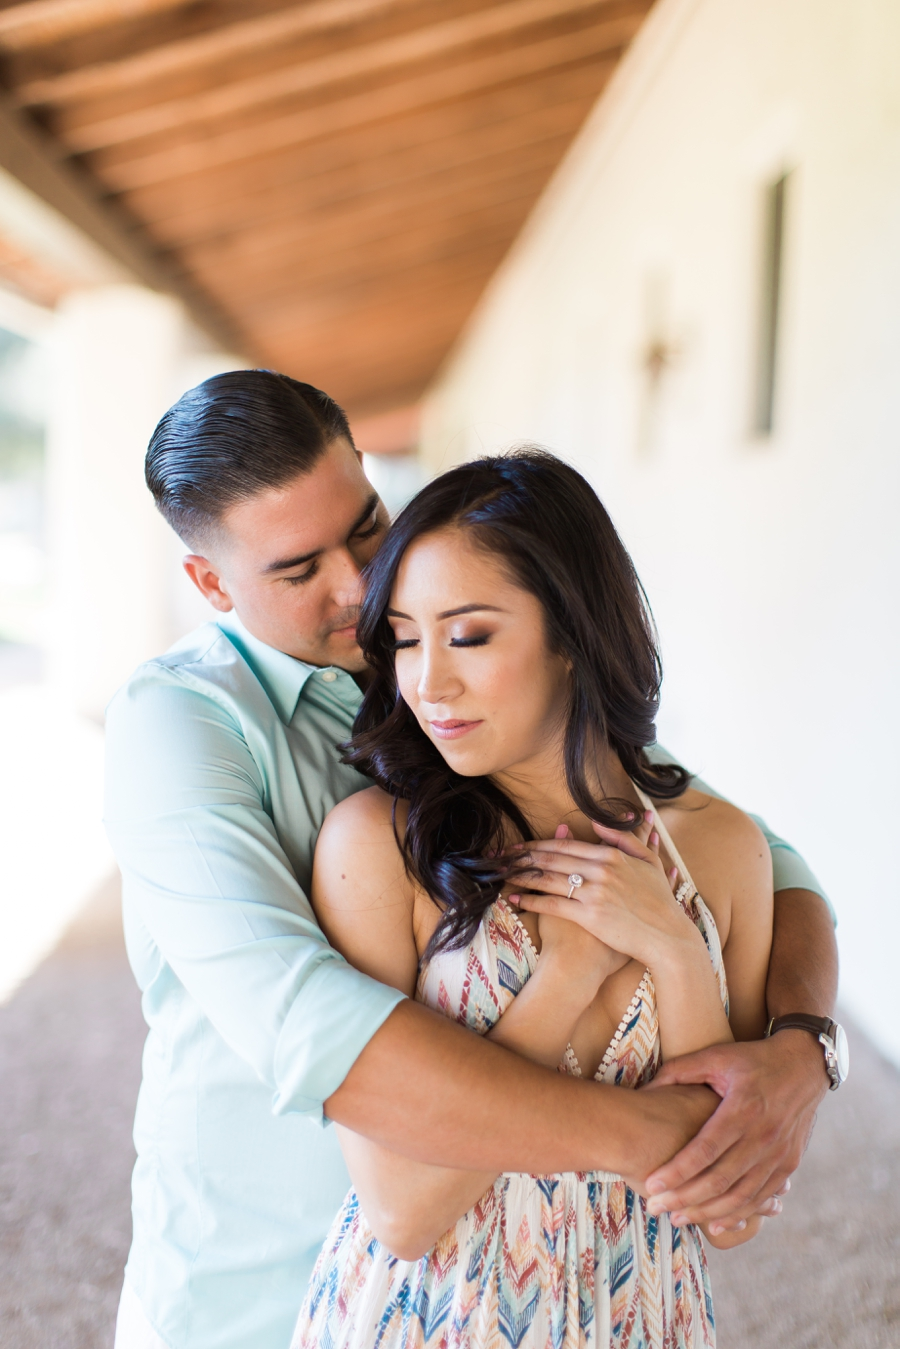 Taylor_Kinzie_Photography_Santa_Barbara_Engagement_Photography_0109